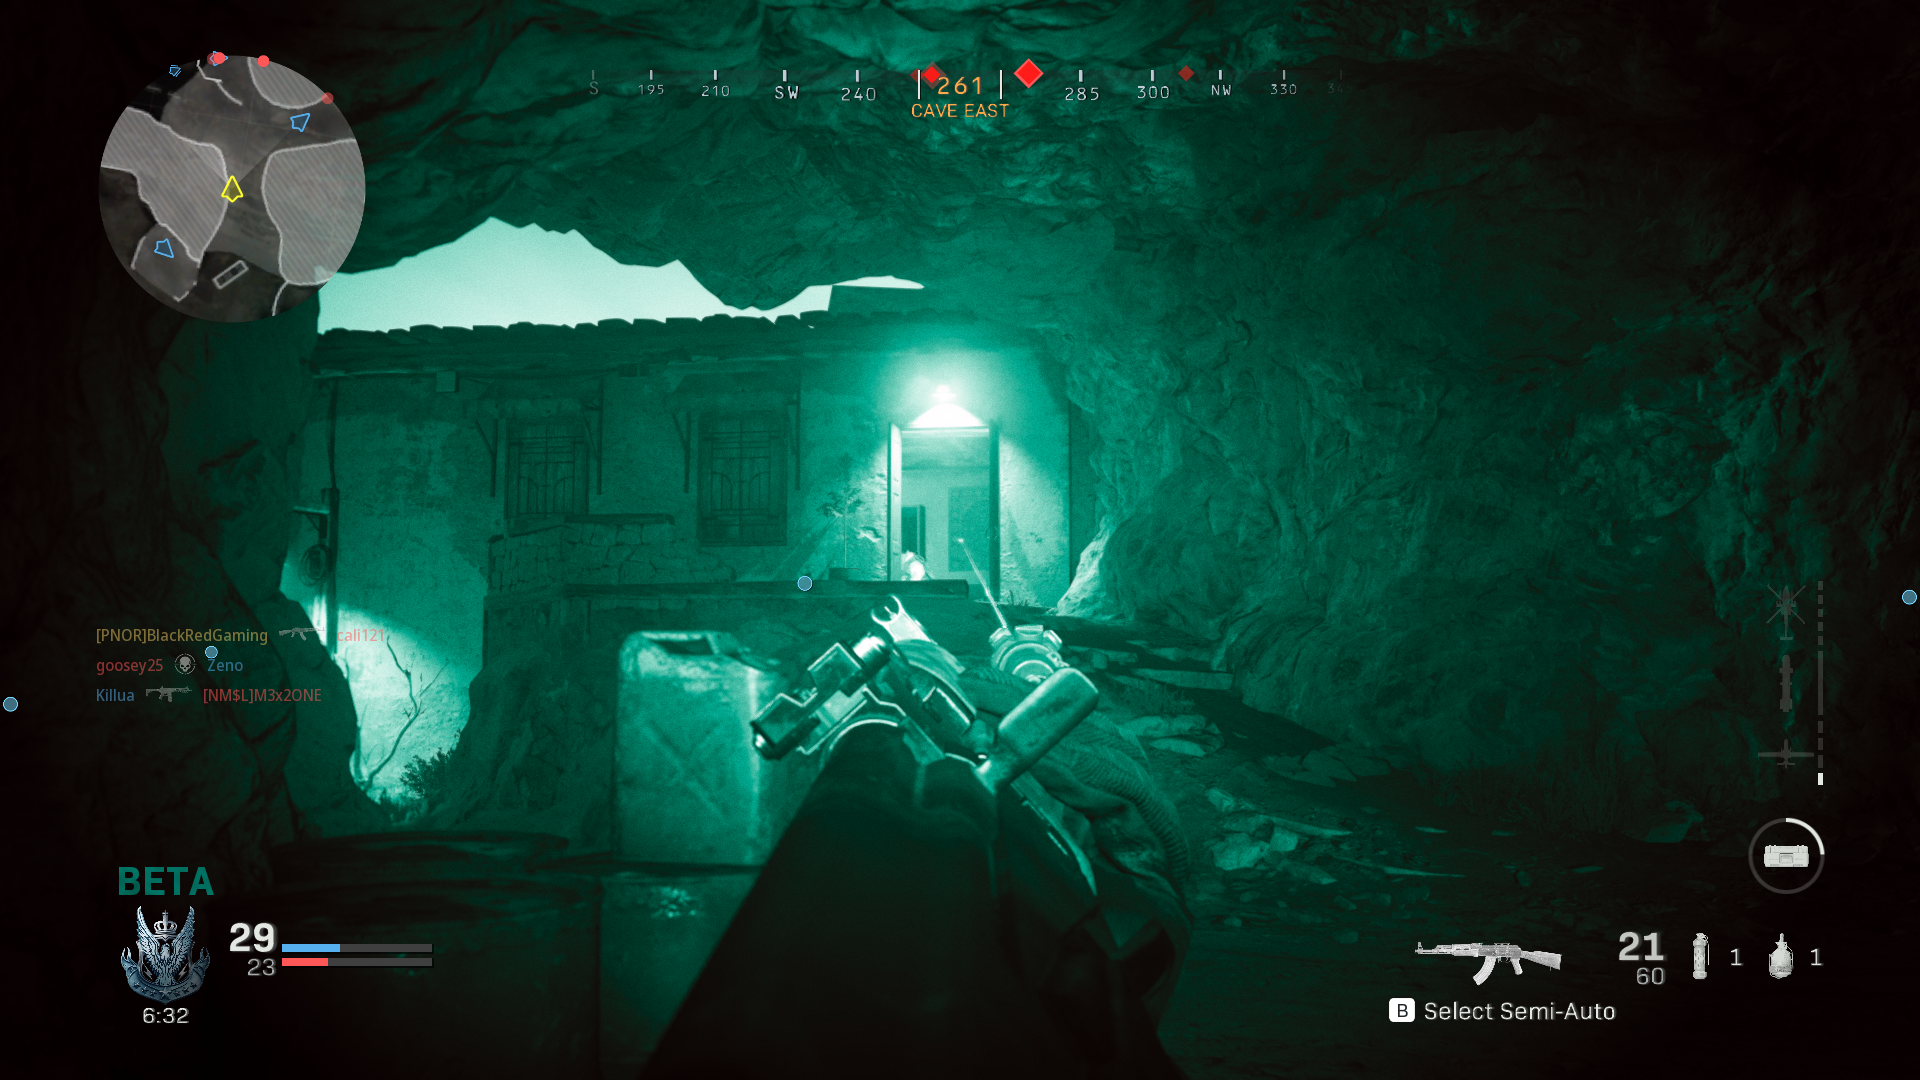 Weapons are aimed diagonally in night vision mode, and watching out for lasers is a good way to find enemies before seeing them.